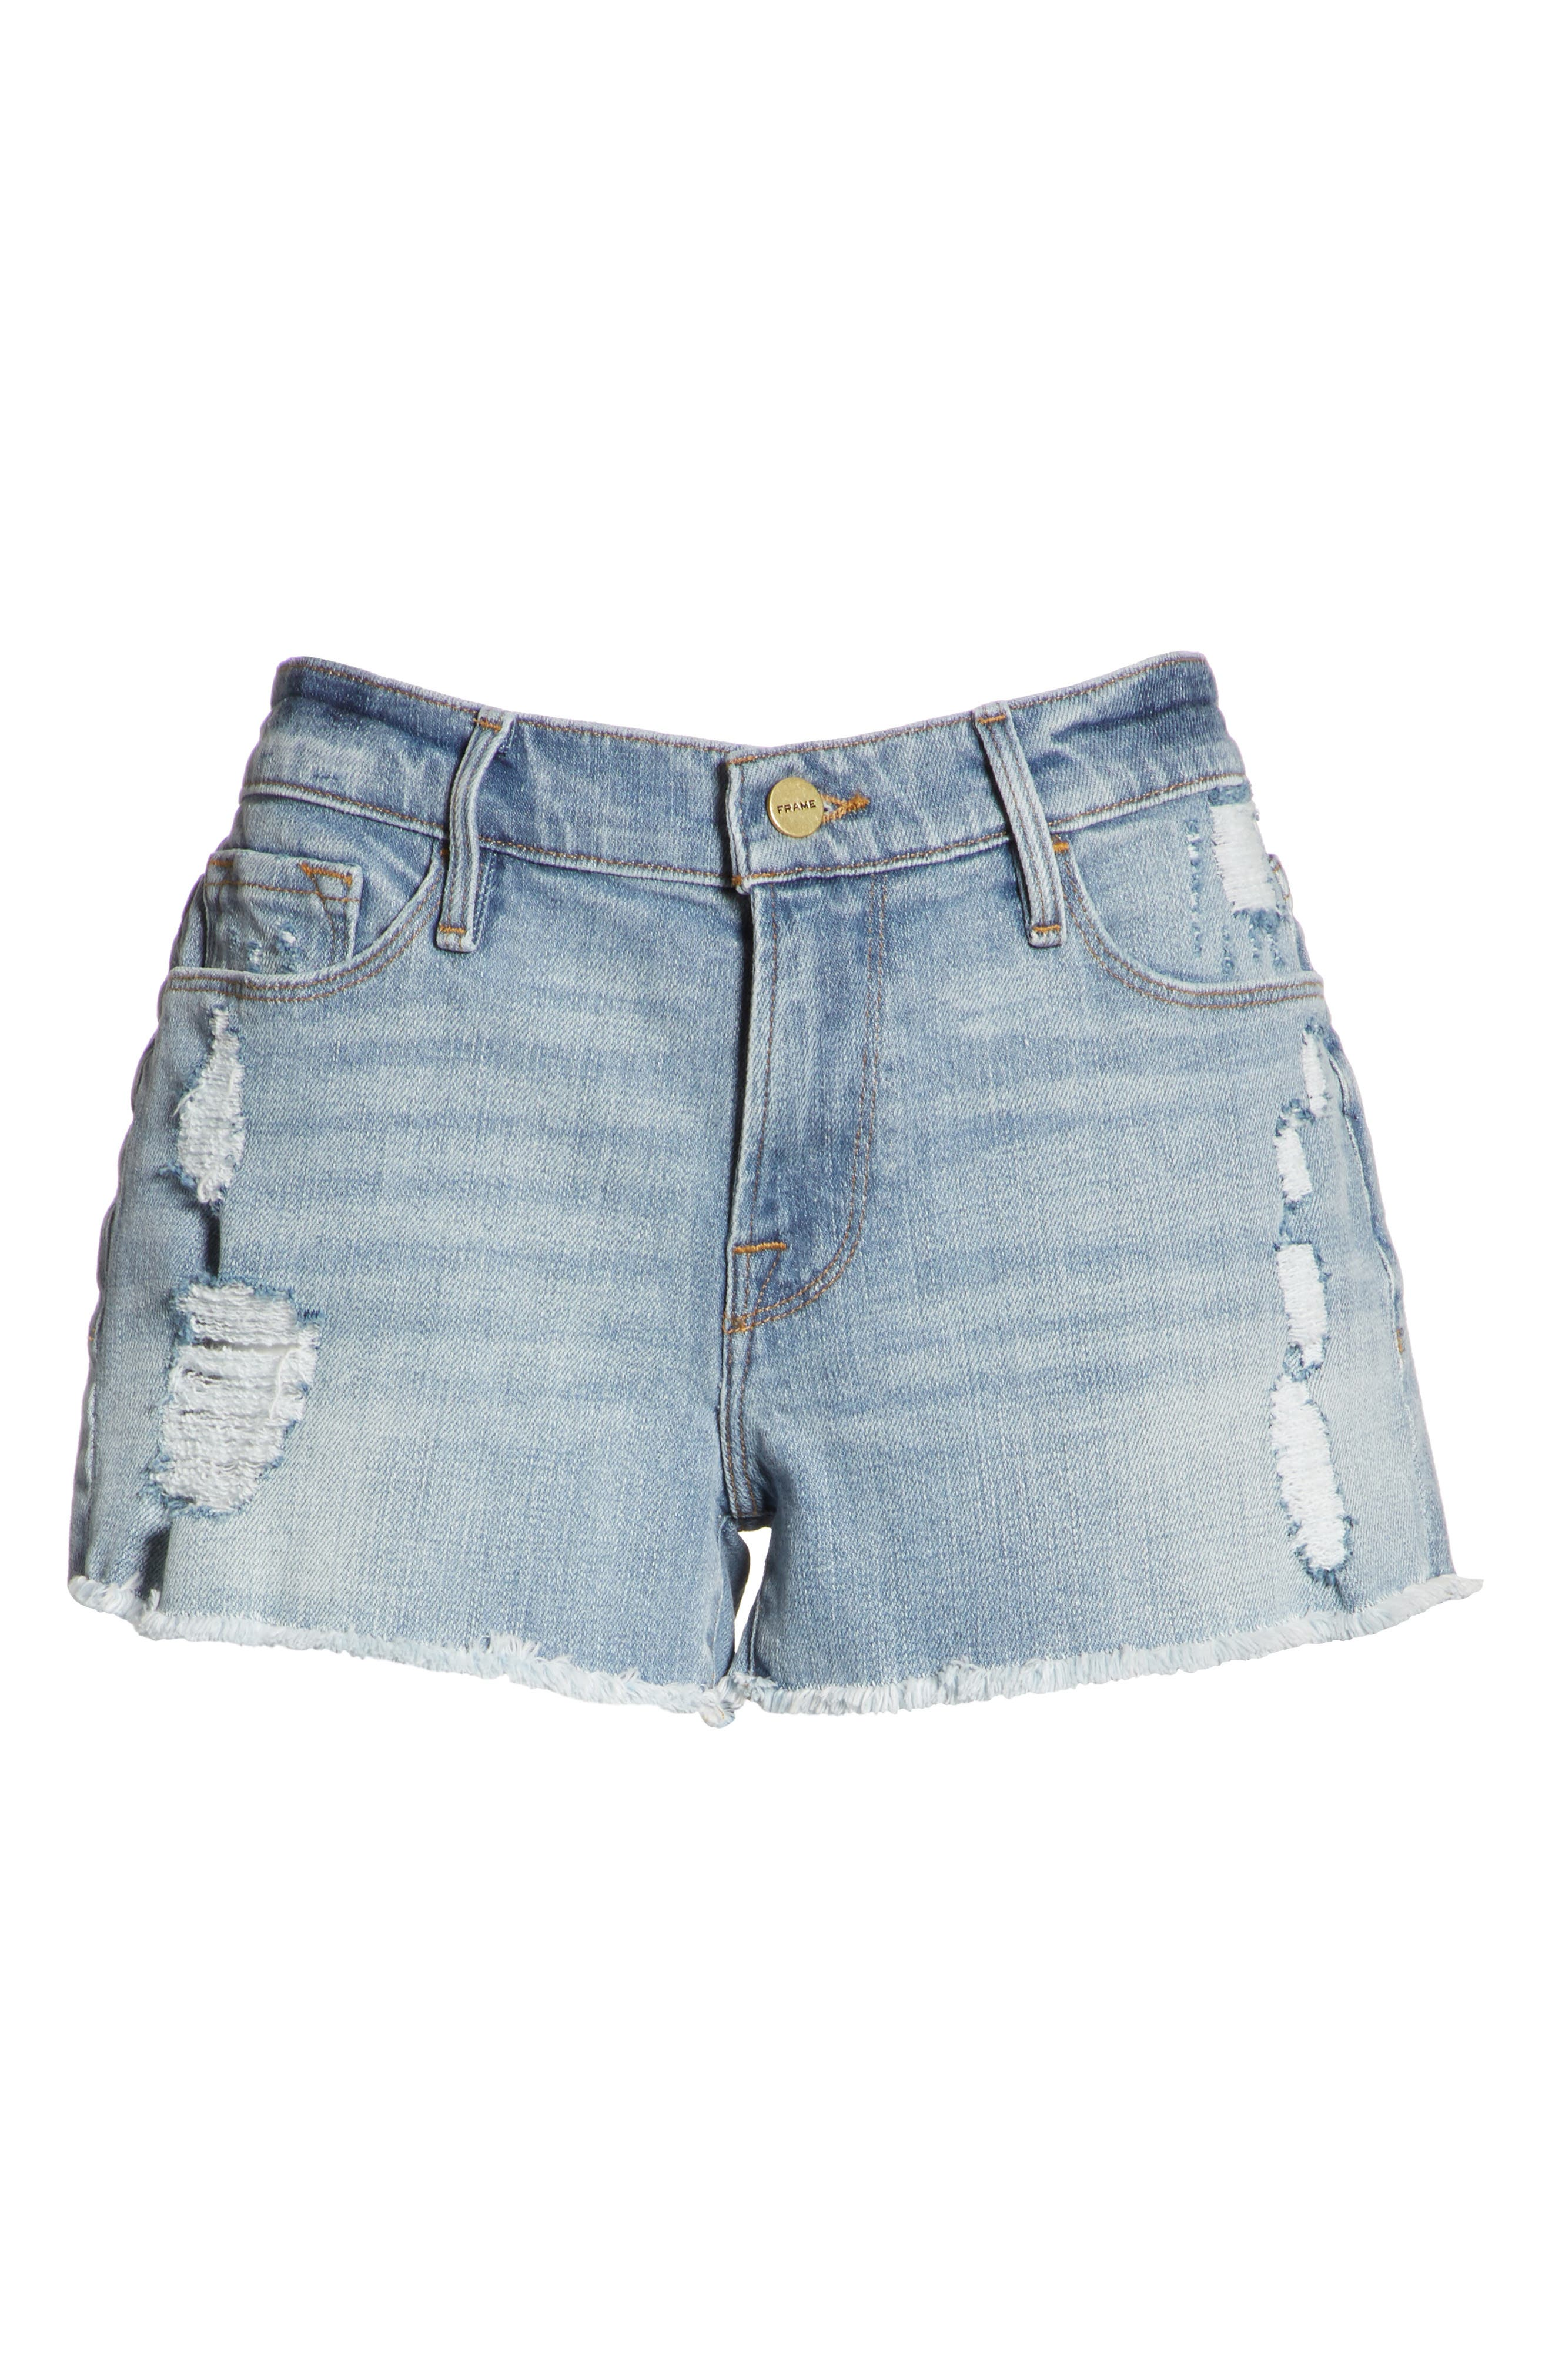 Le Cutoff Denim Shorts,                             Alternate thumbnail 7, color,                             TAFFORD